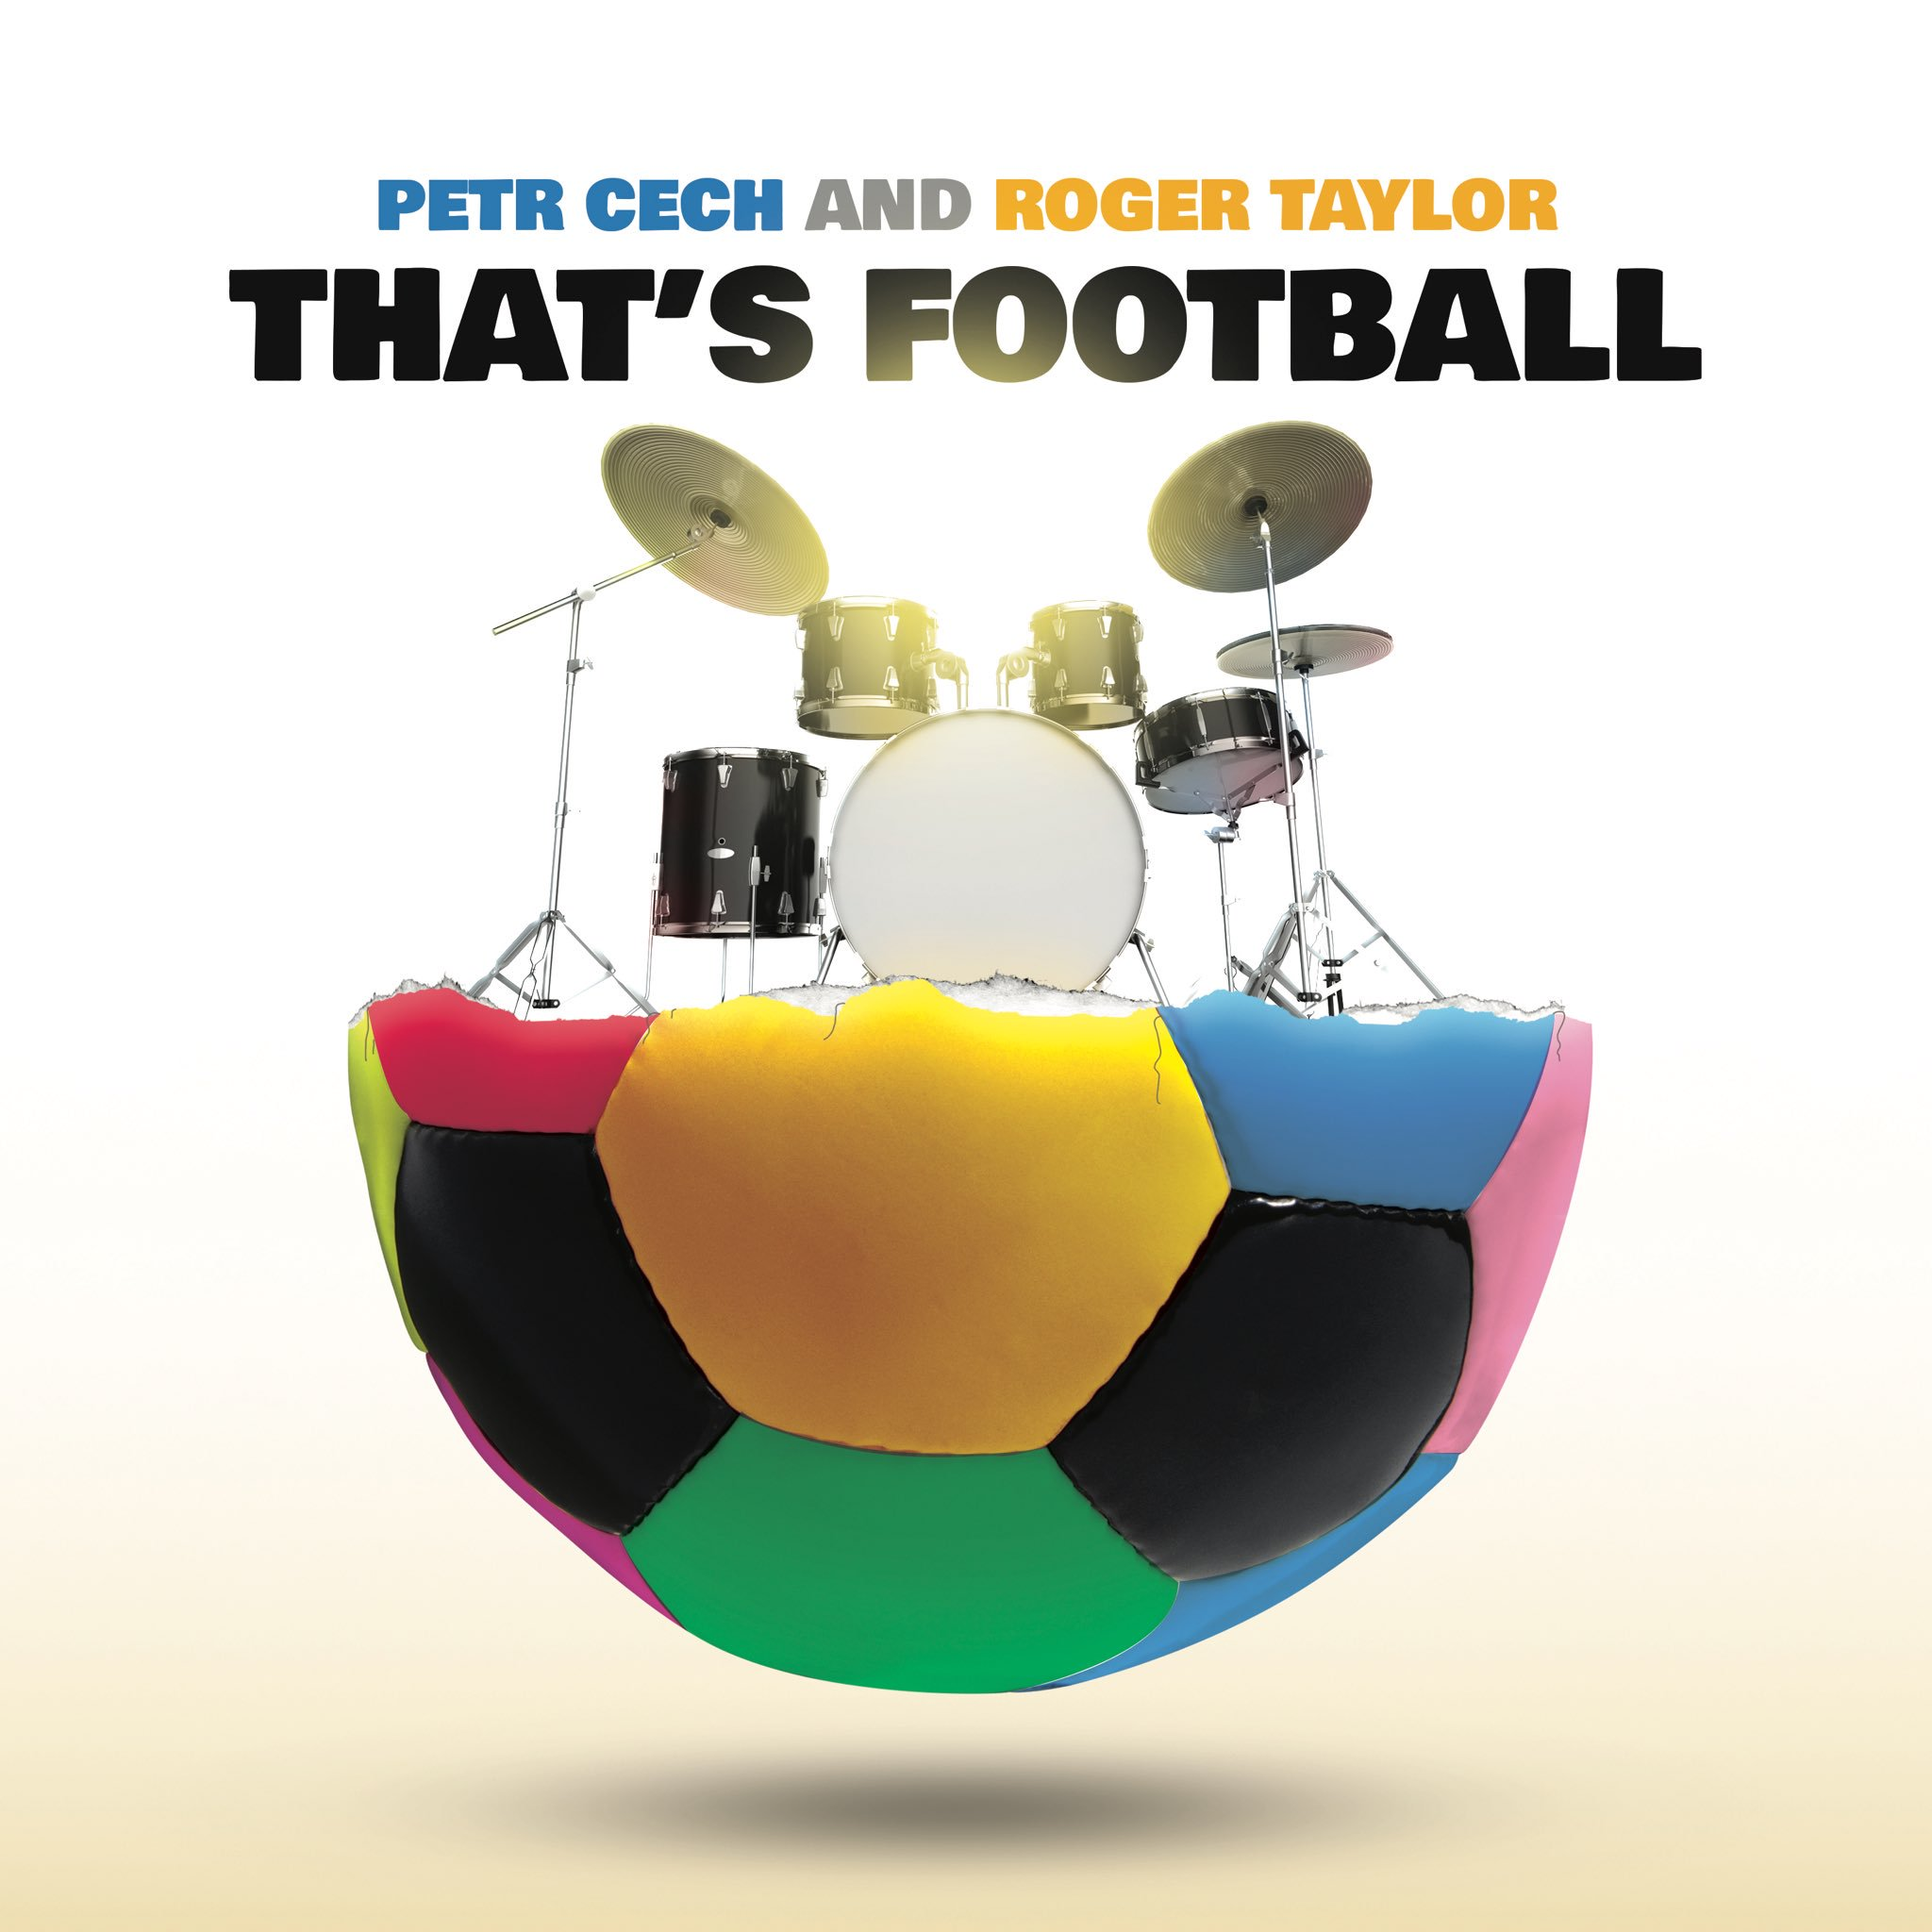 Curiosities – Petr Cech and Roger Taylor – That's Football